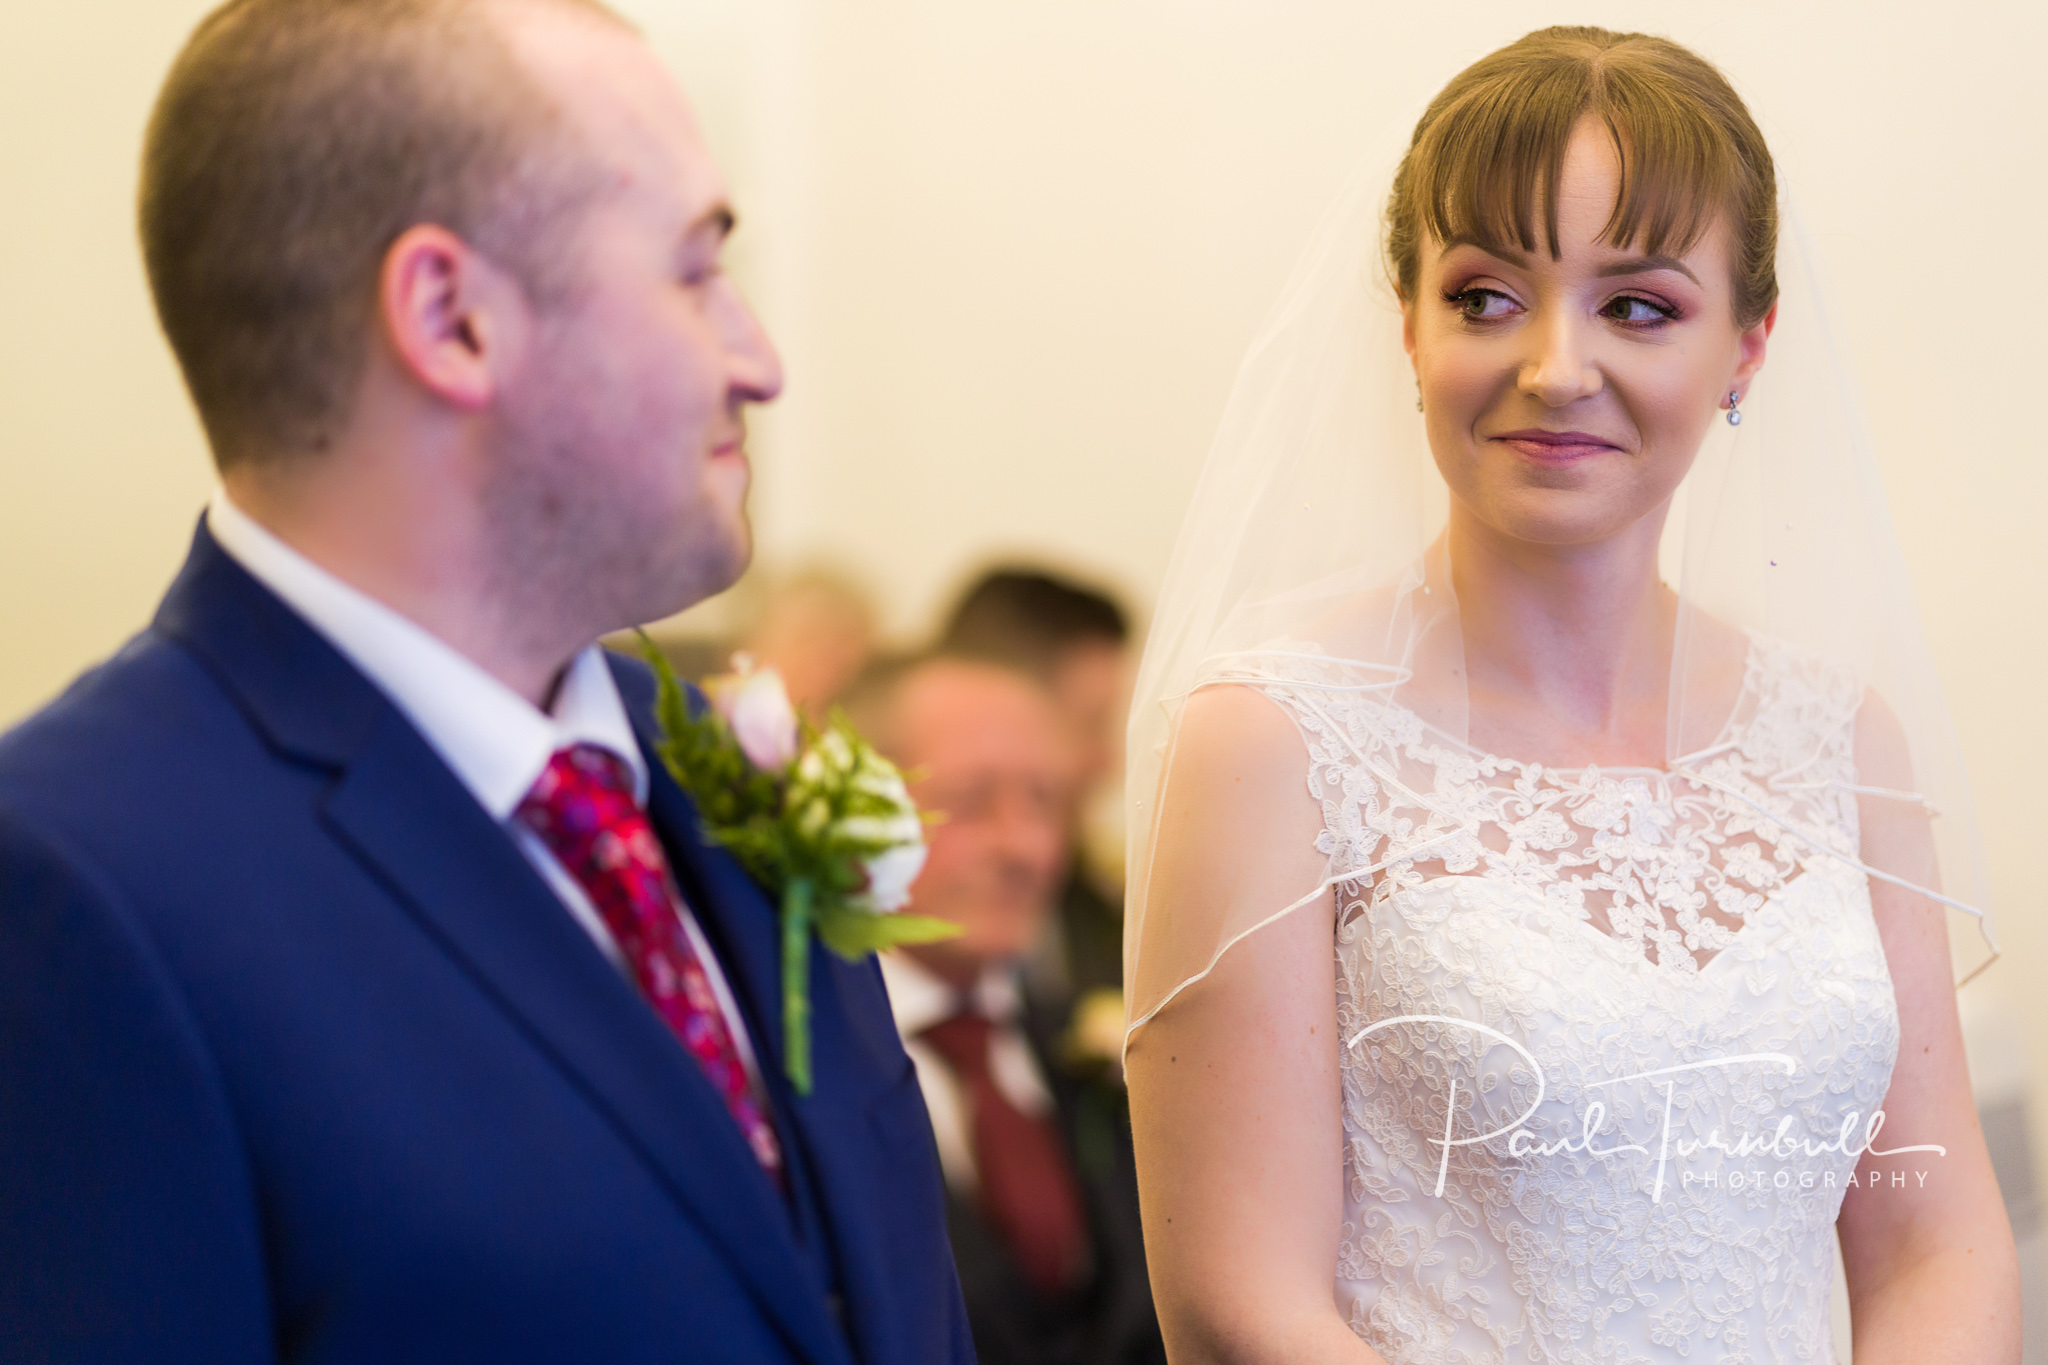 wedding-photographer-pontefract-yorkshire-laura-keanu-029.jpg